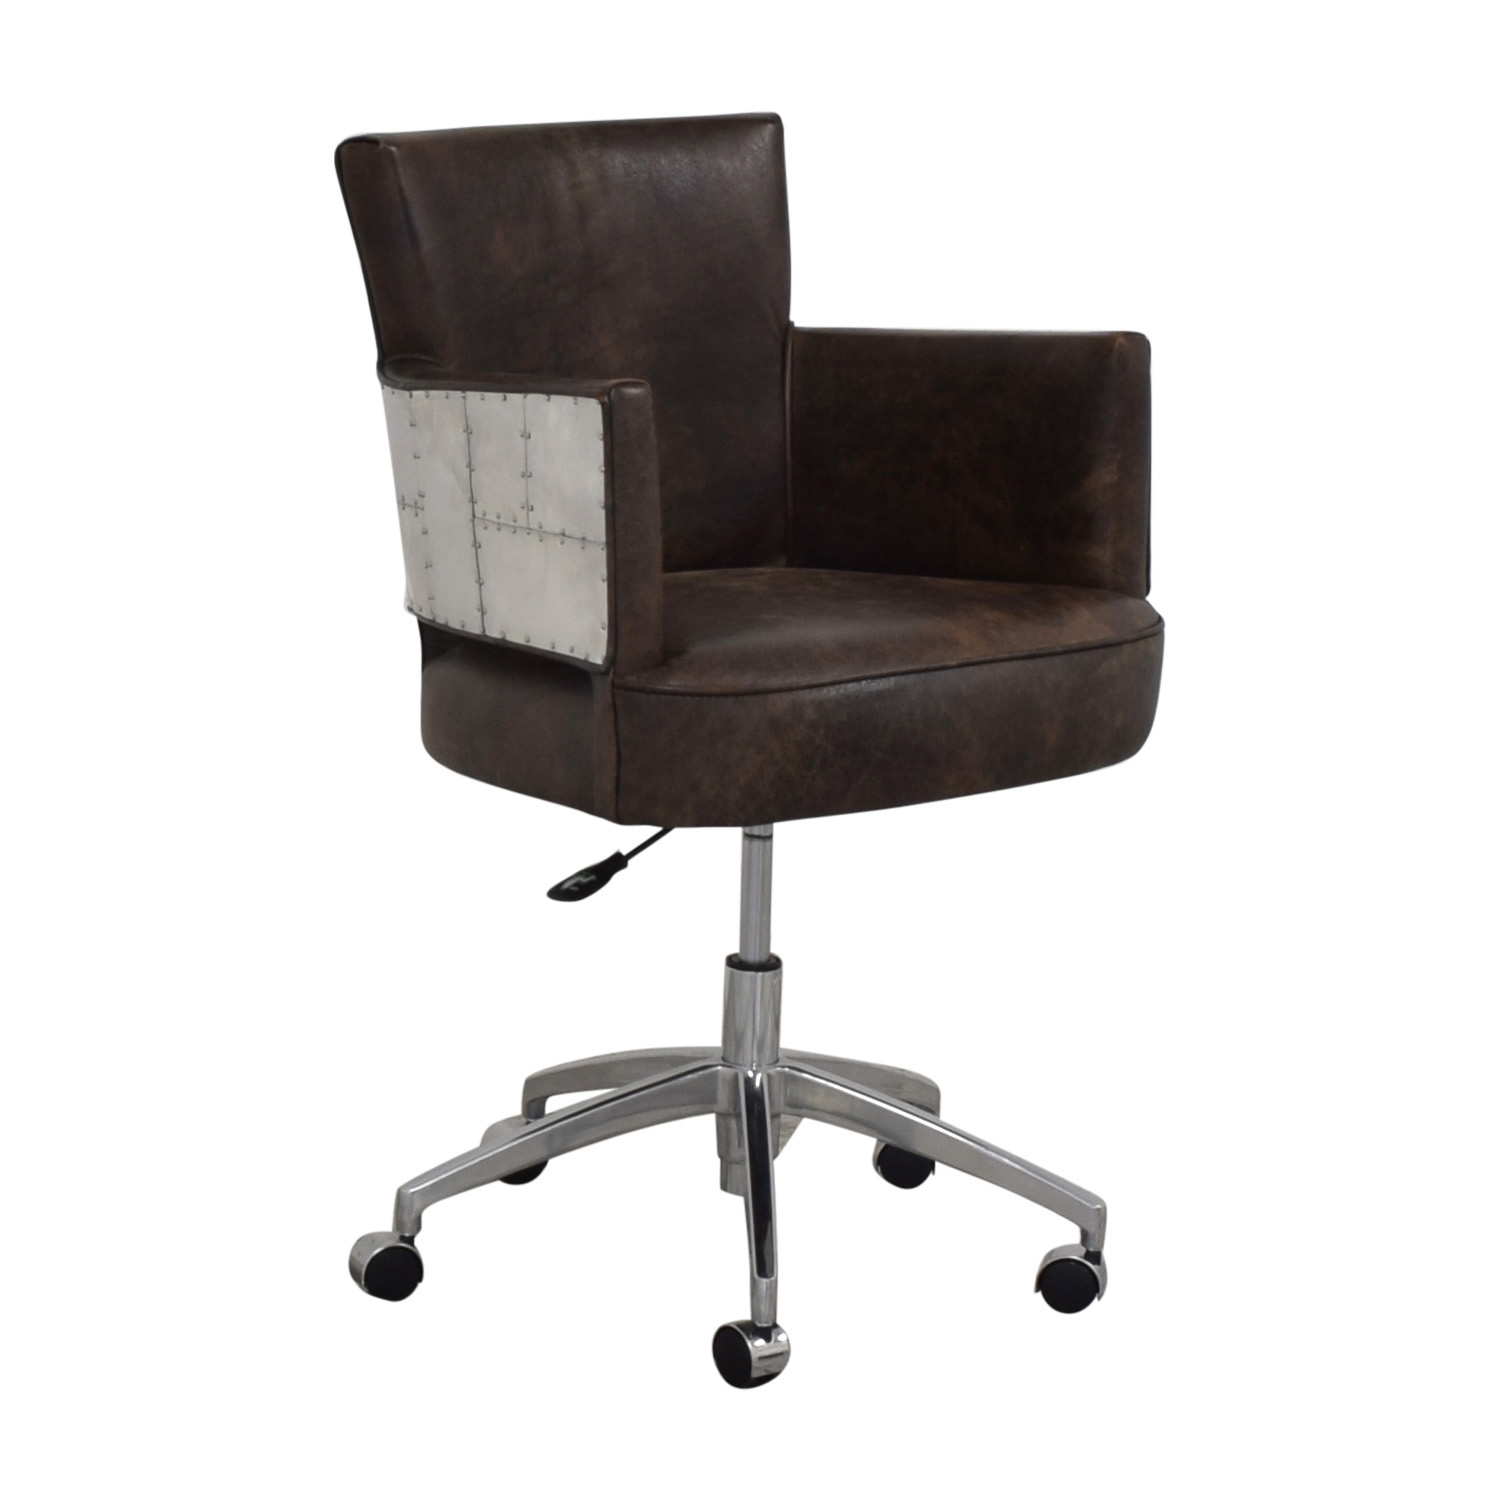 shop Timothy Oulton Swinderby Chair Timothy Oulton Chairs